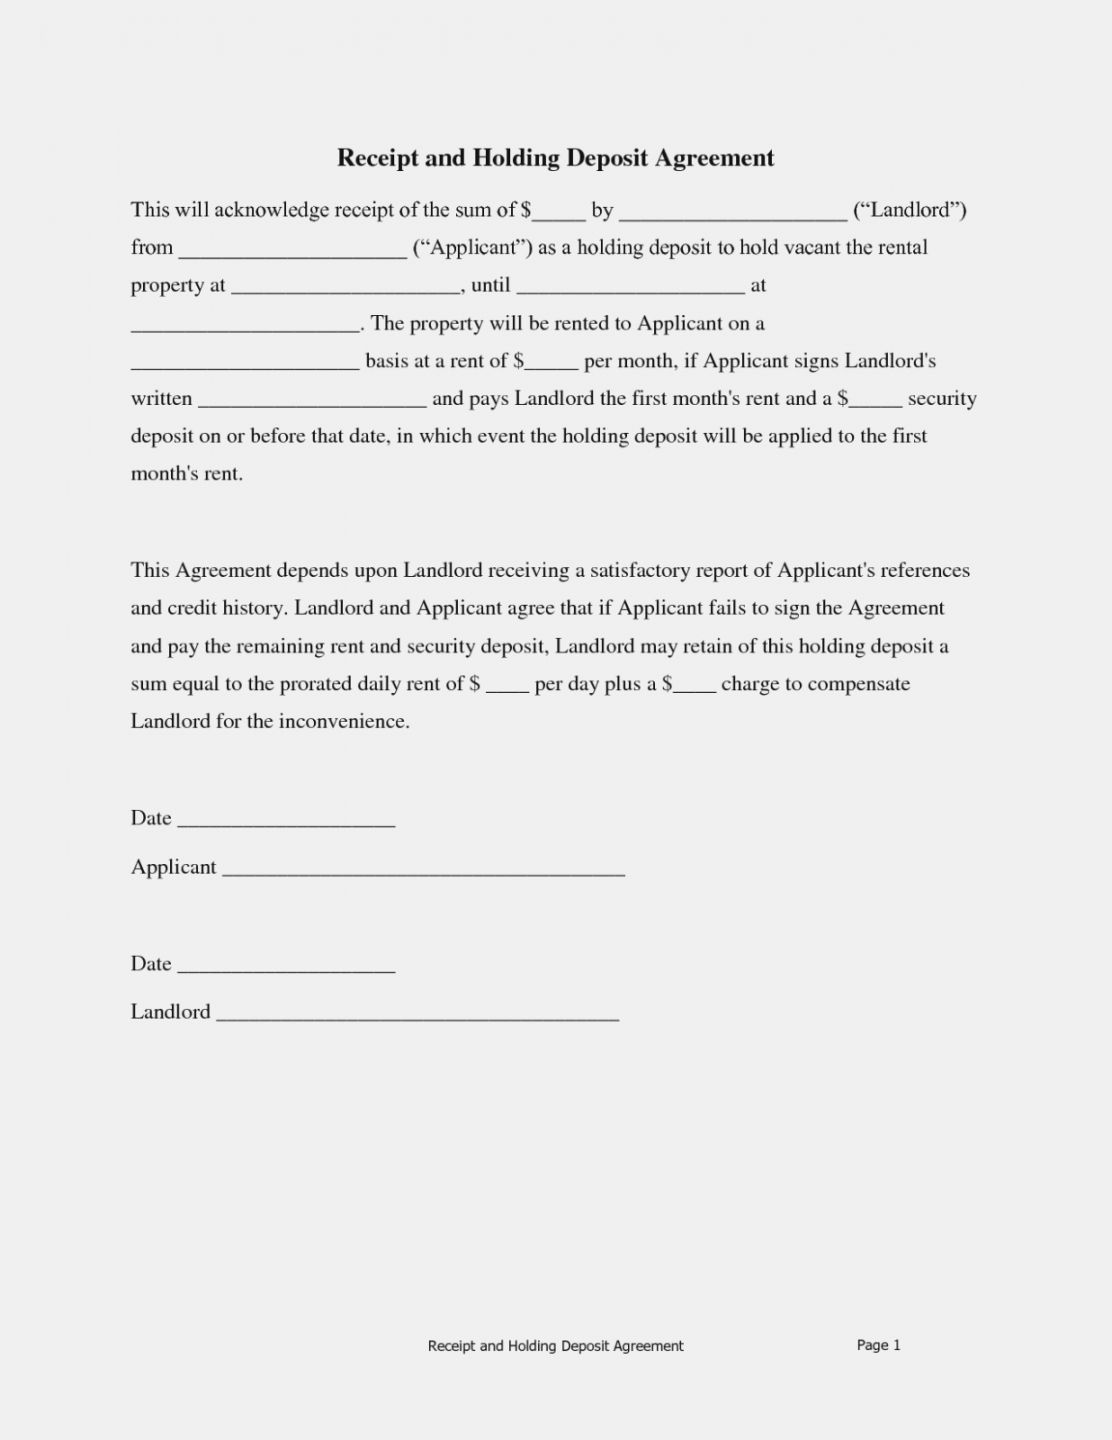 Get Our Image Of Holding Deposit Form Template For Free Deposit Being A Landlord Form